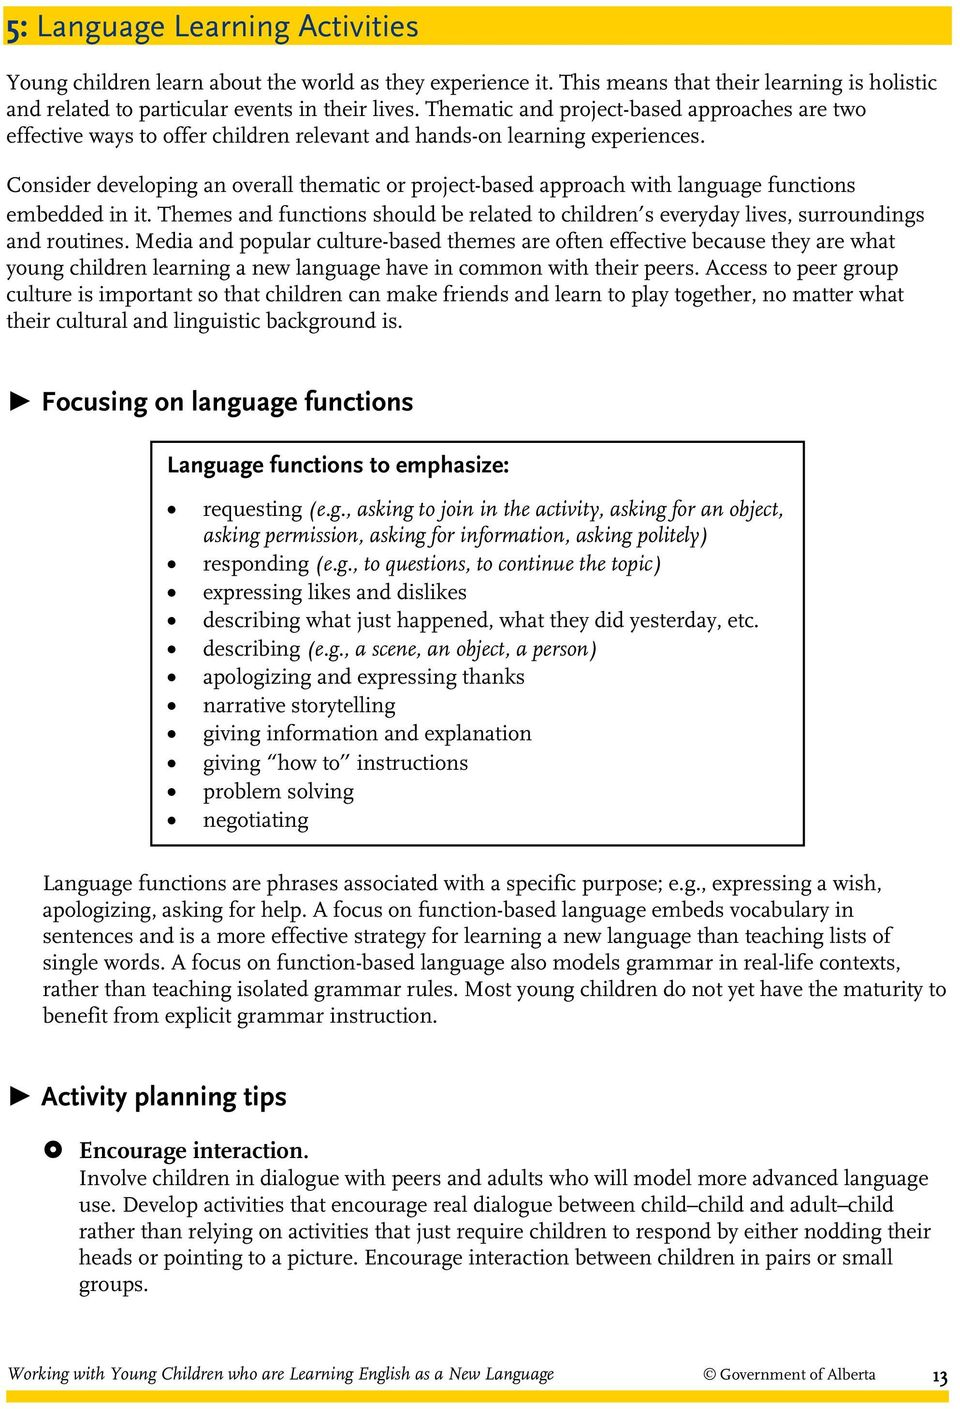 Consider developing an overall thematic or project-based approach with language functions embedded in it.